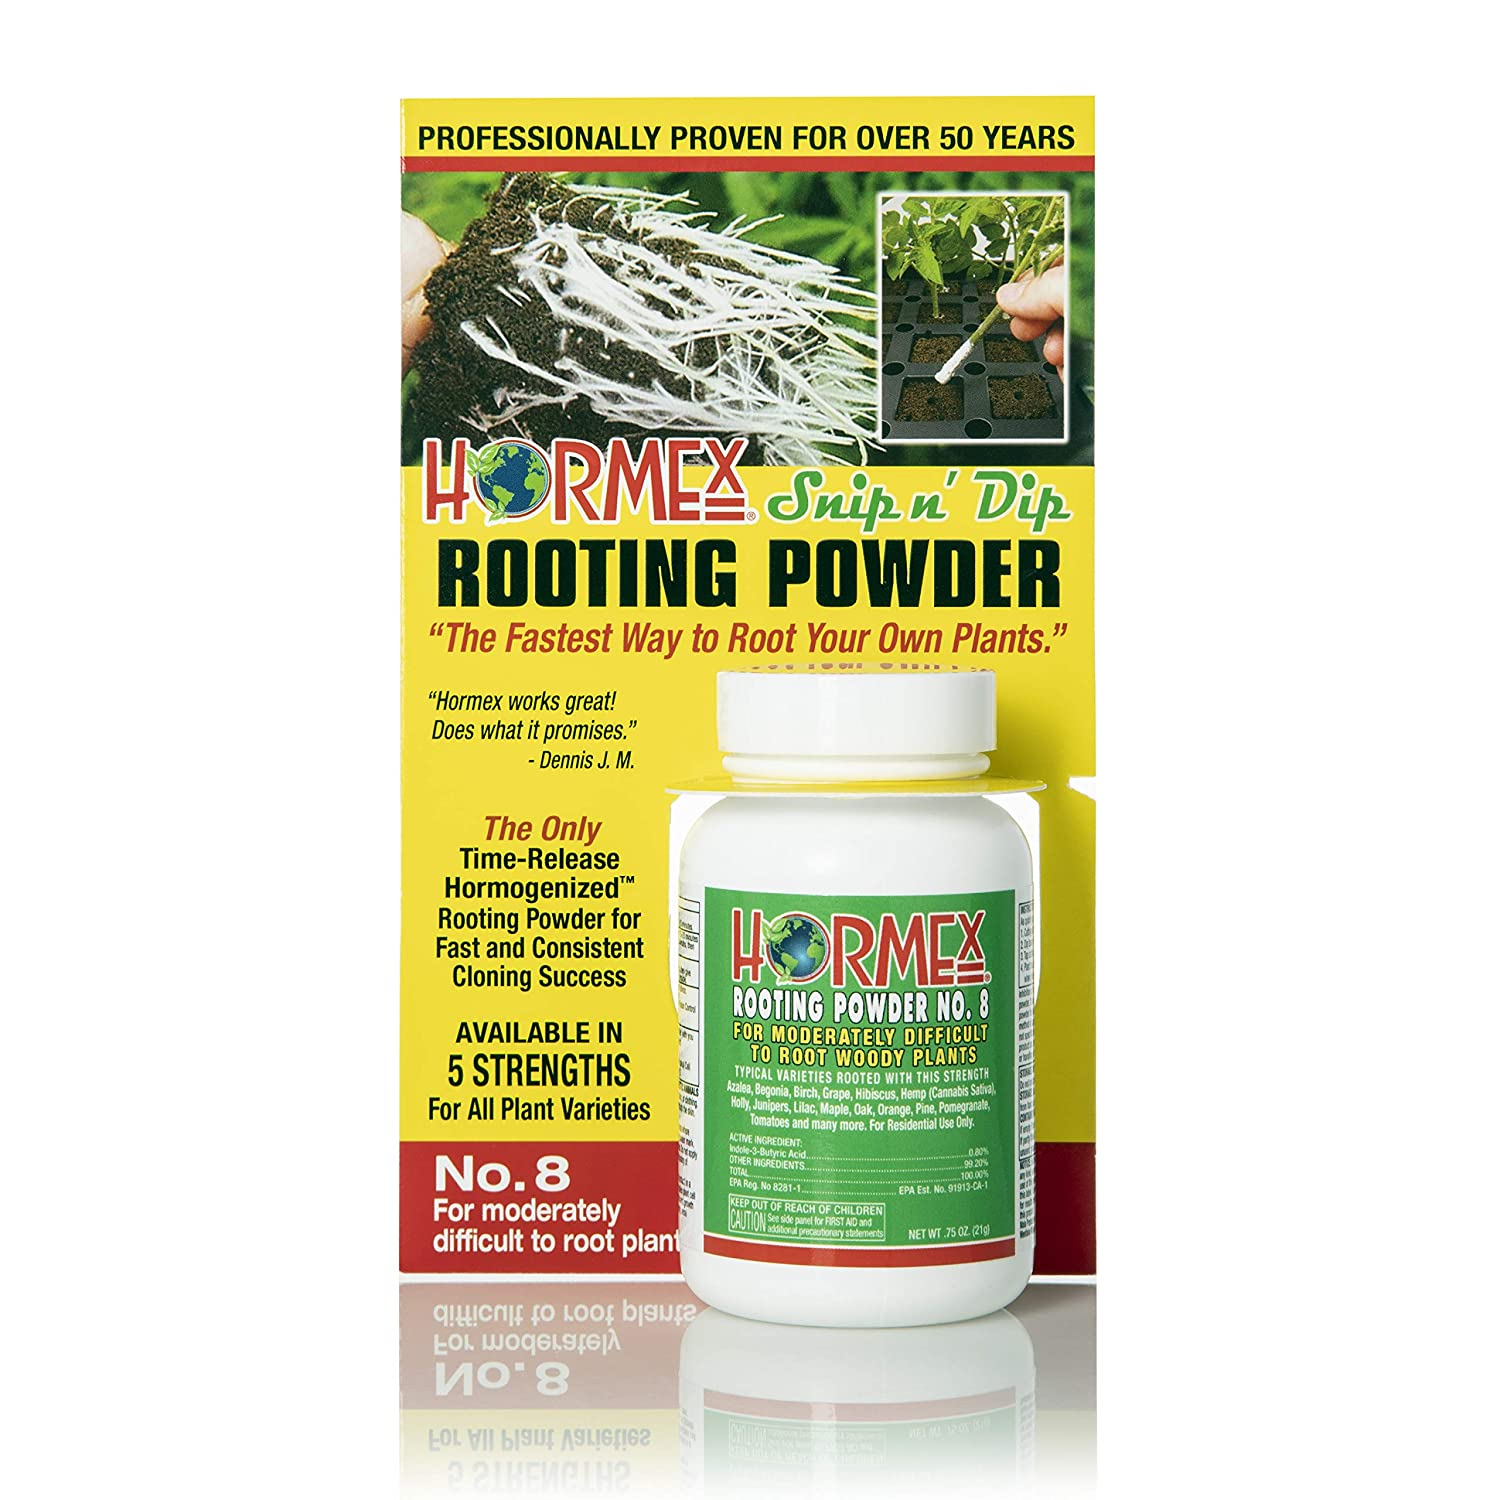 Hormex Rooting Hormone Powder #8   for Moderately Difficult to Root Plants   Fastest IBA Rooting Powder Compound for Strong & Healthy Roots (3/4 oz)